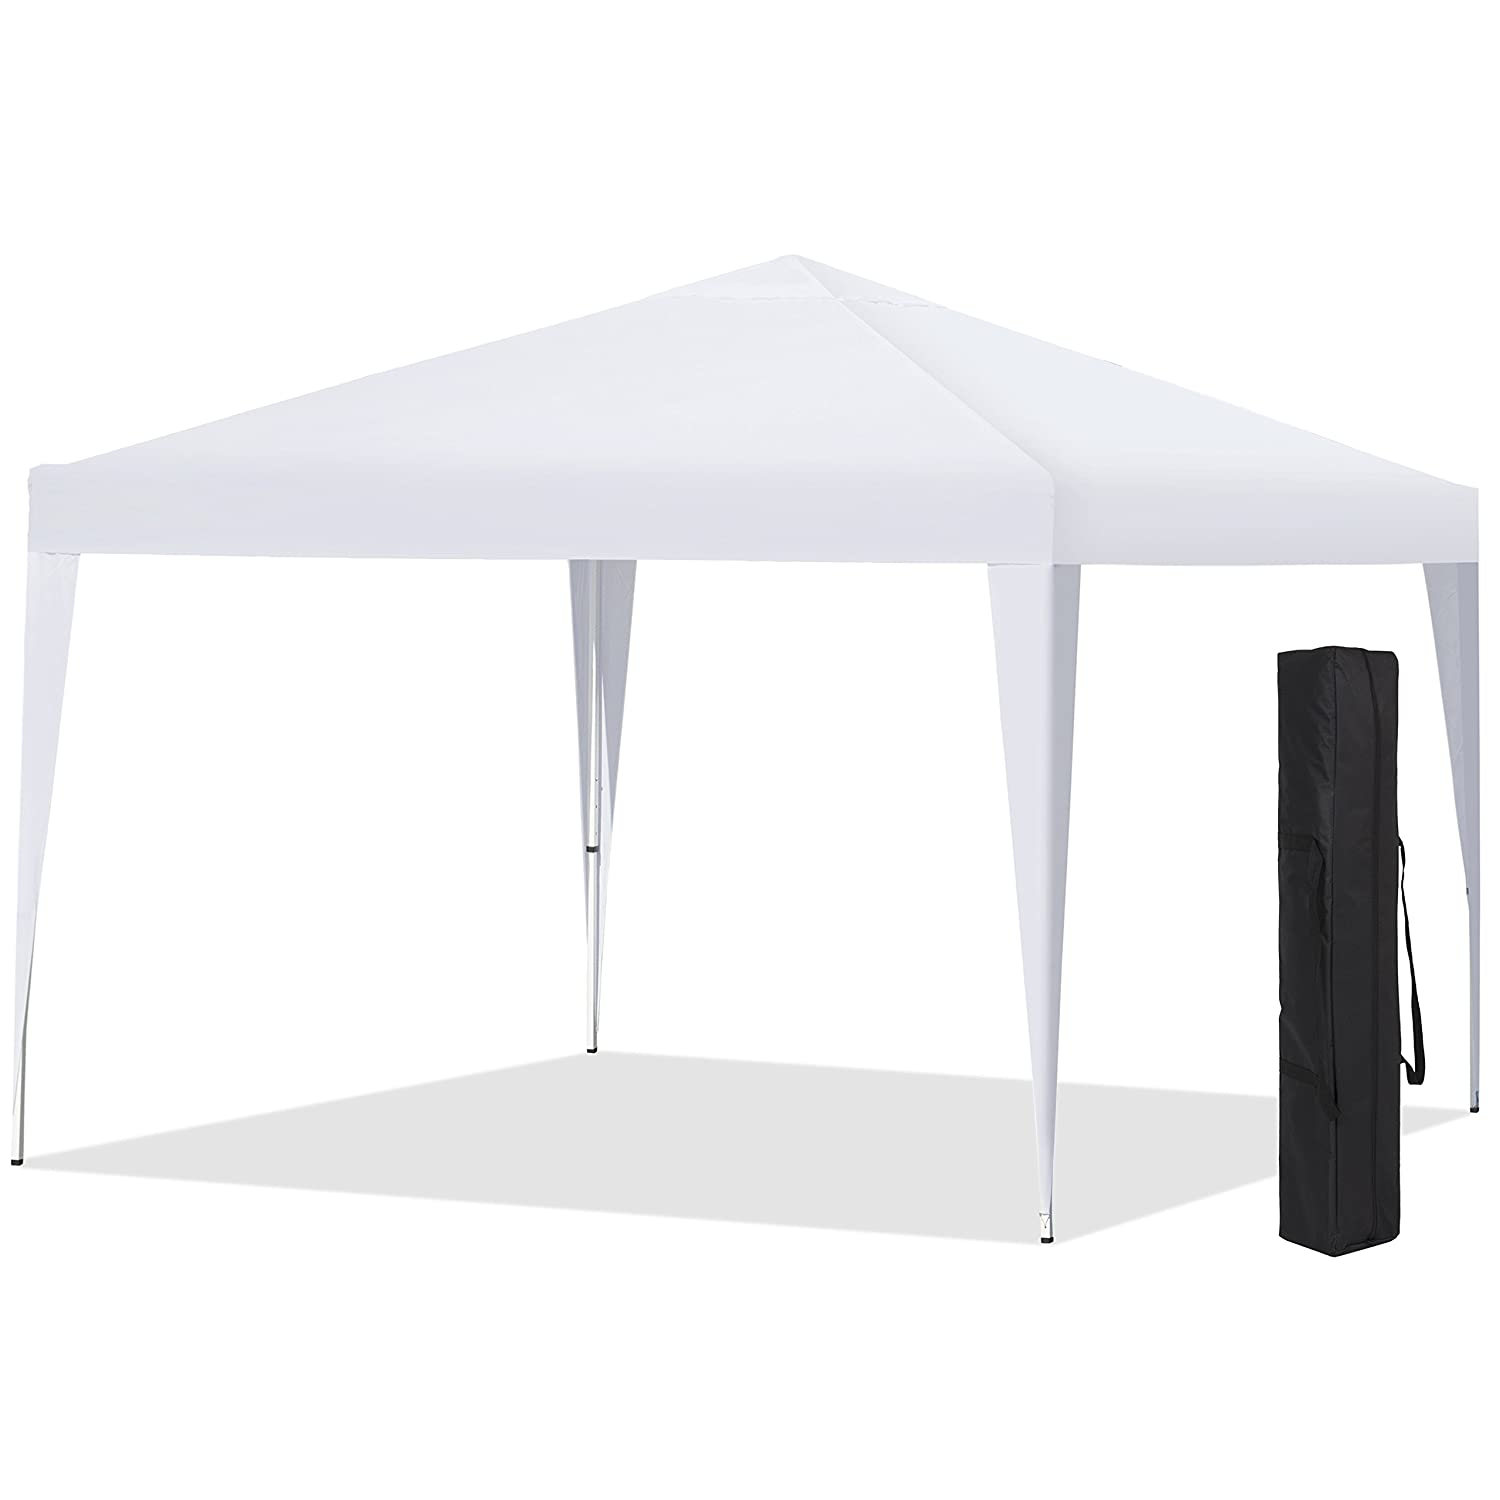 Amazon.com  Best Choice Products 10u0027X10u0027 EZ Pop Up Canopy Tent W/ Carrying Case  Garden u0026 Outdoor  sc 1 st  Amazon.com & Amazon.com : Best Choice Products 10u0027X10u0027 EZ Pop Up Canopy Tent W ...